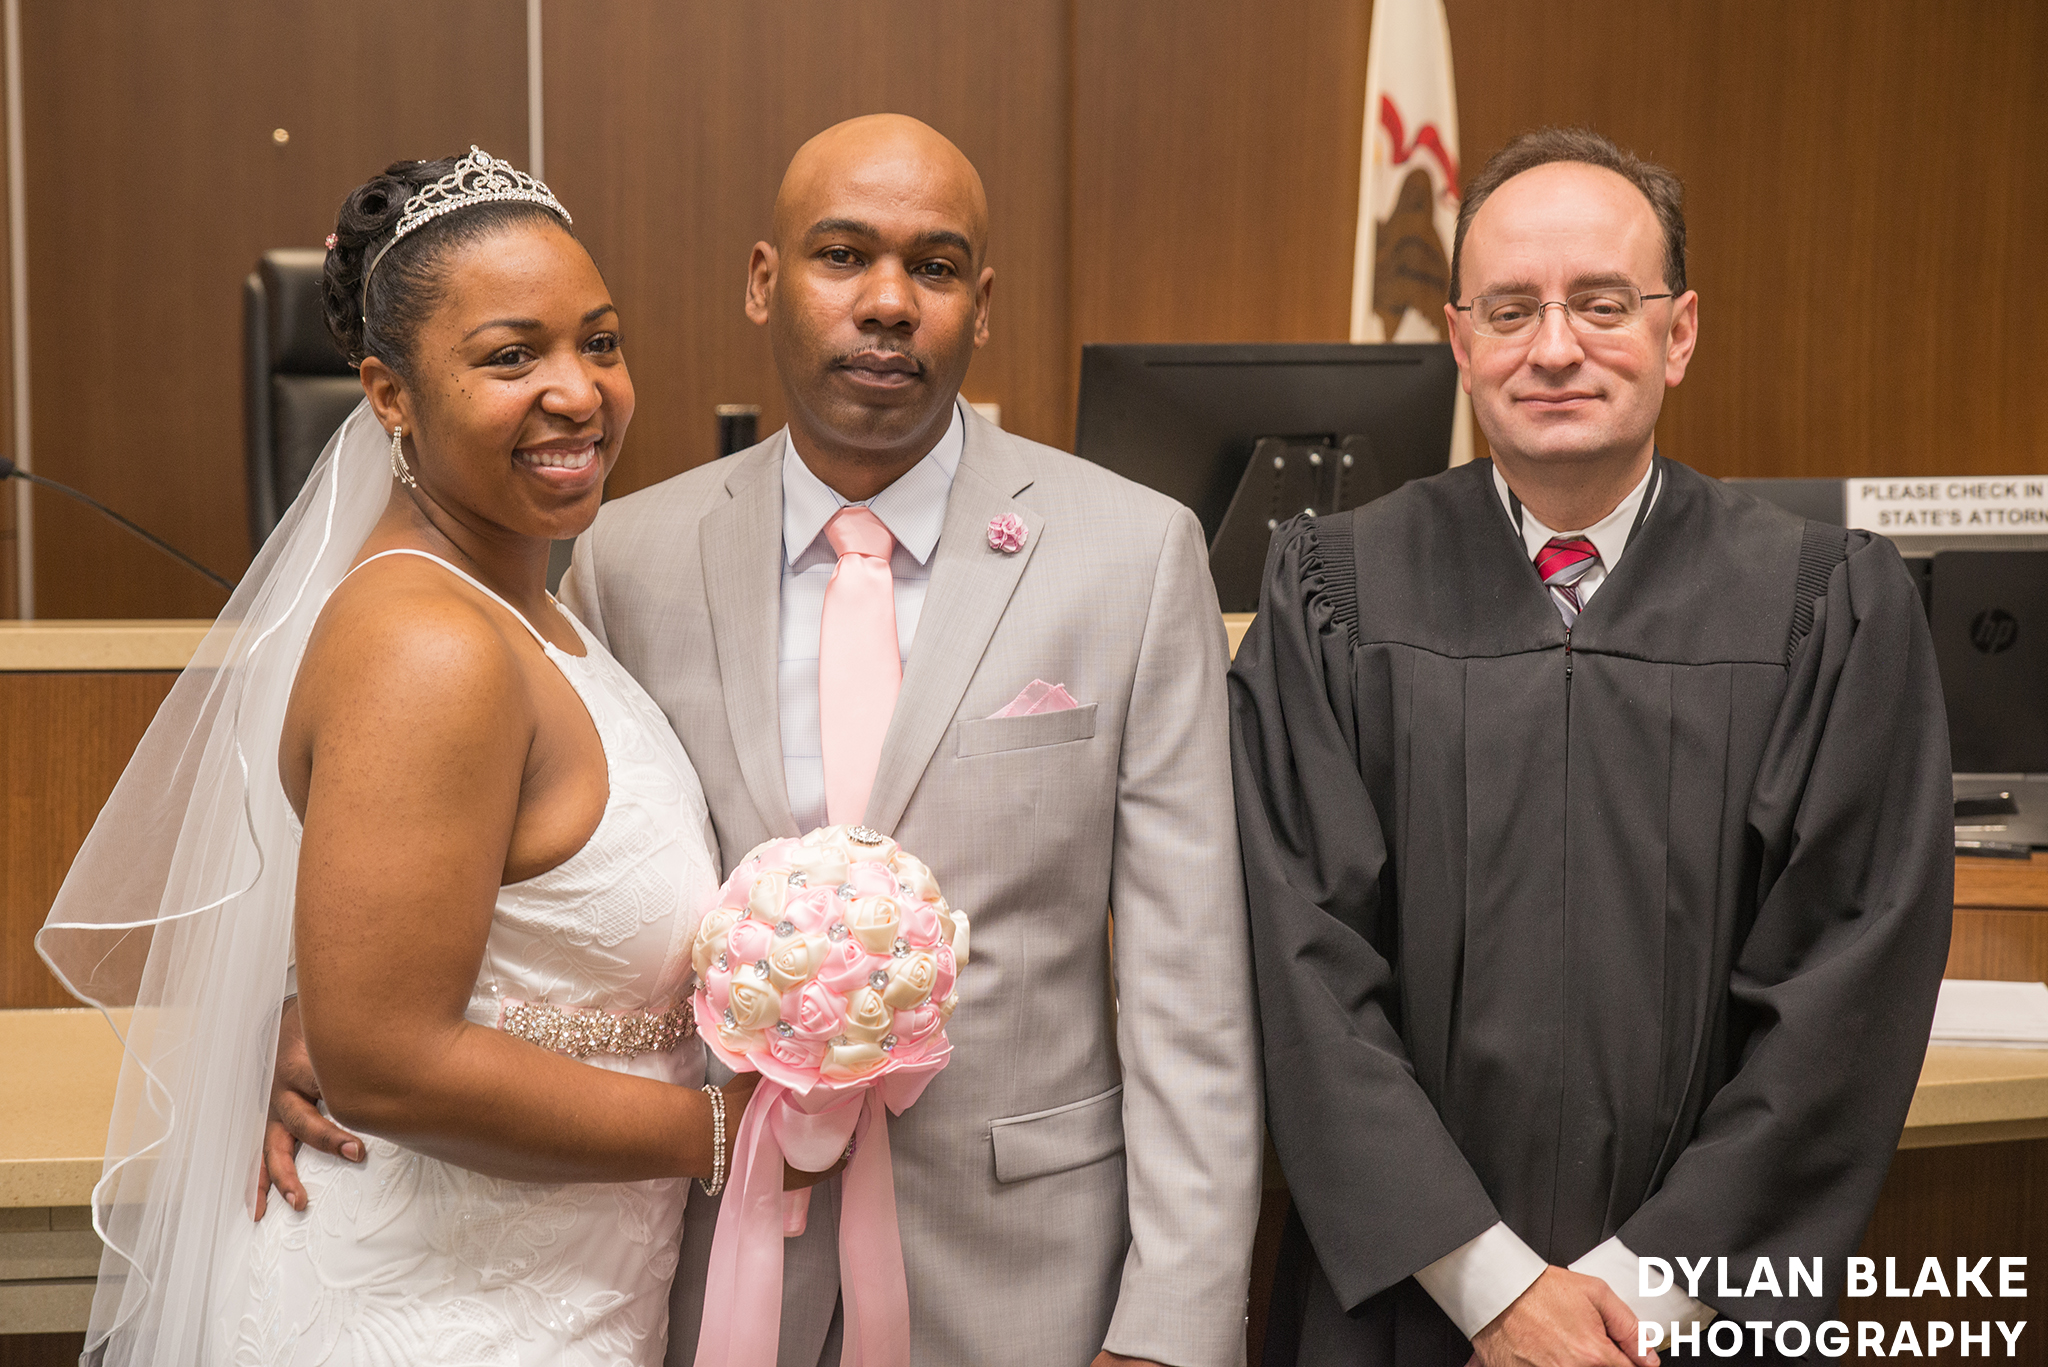 4-lake-county-il-courthouse-wedding-courtroom-couple-portrait-with-judge-01.jpg